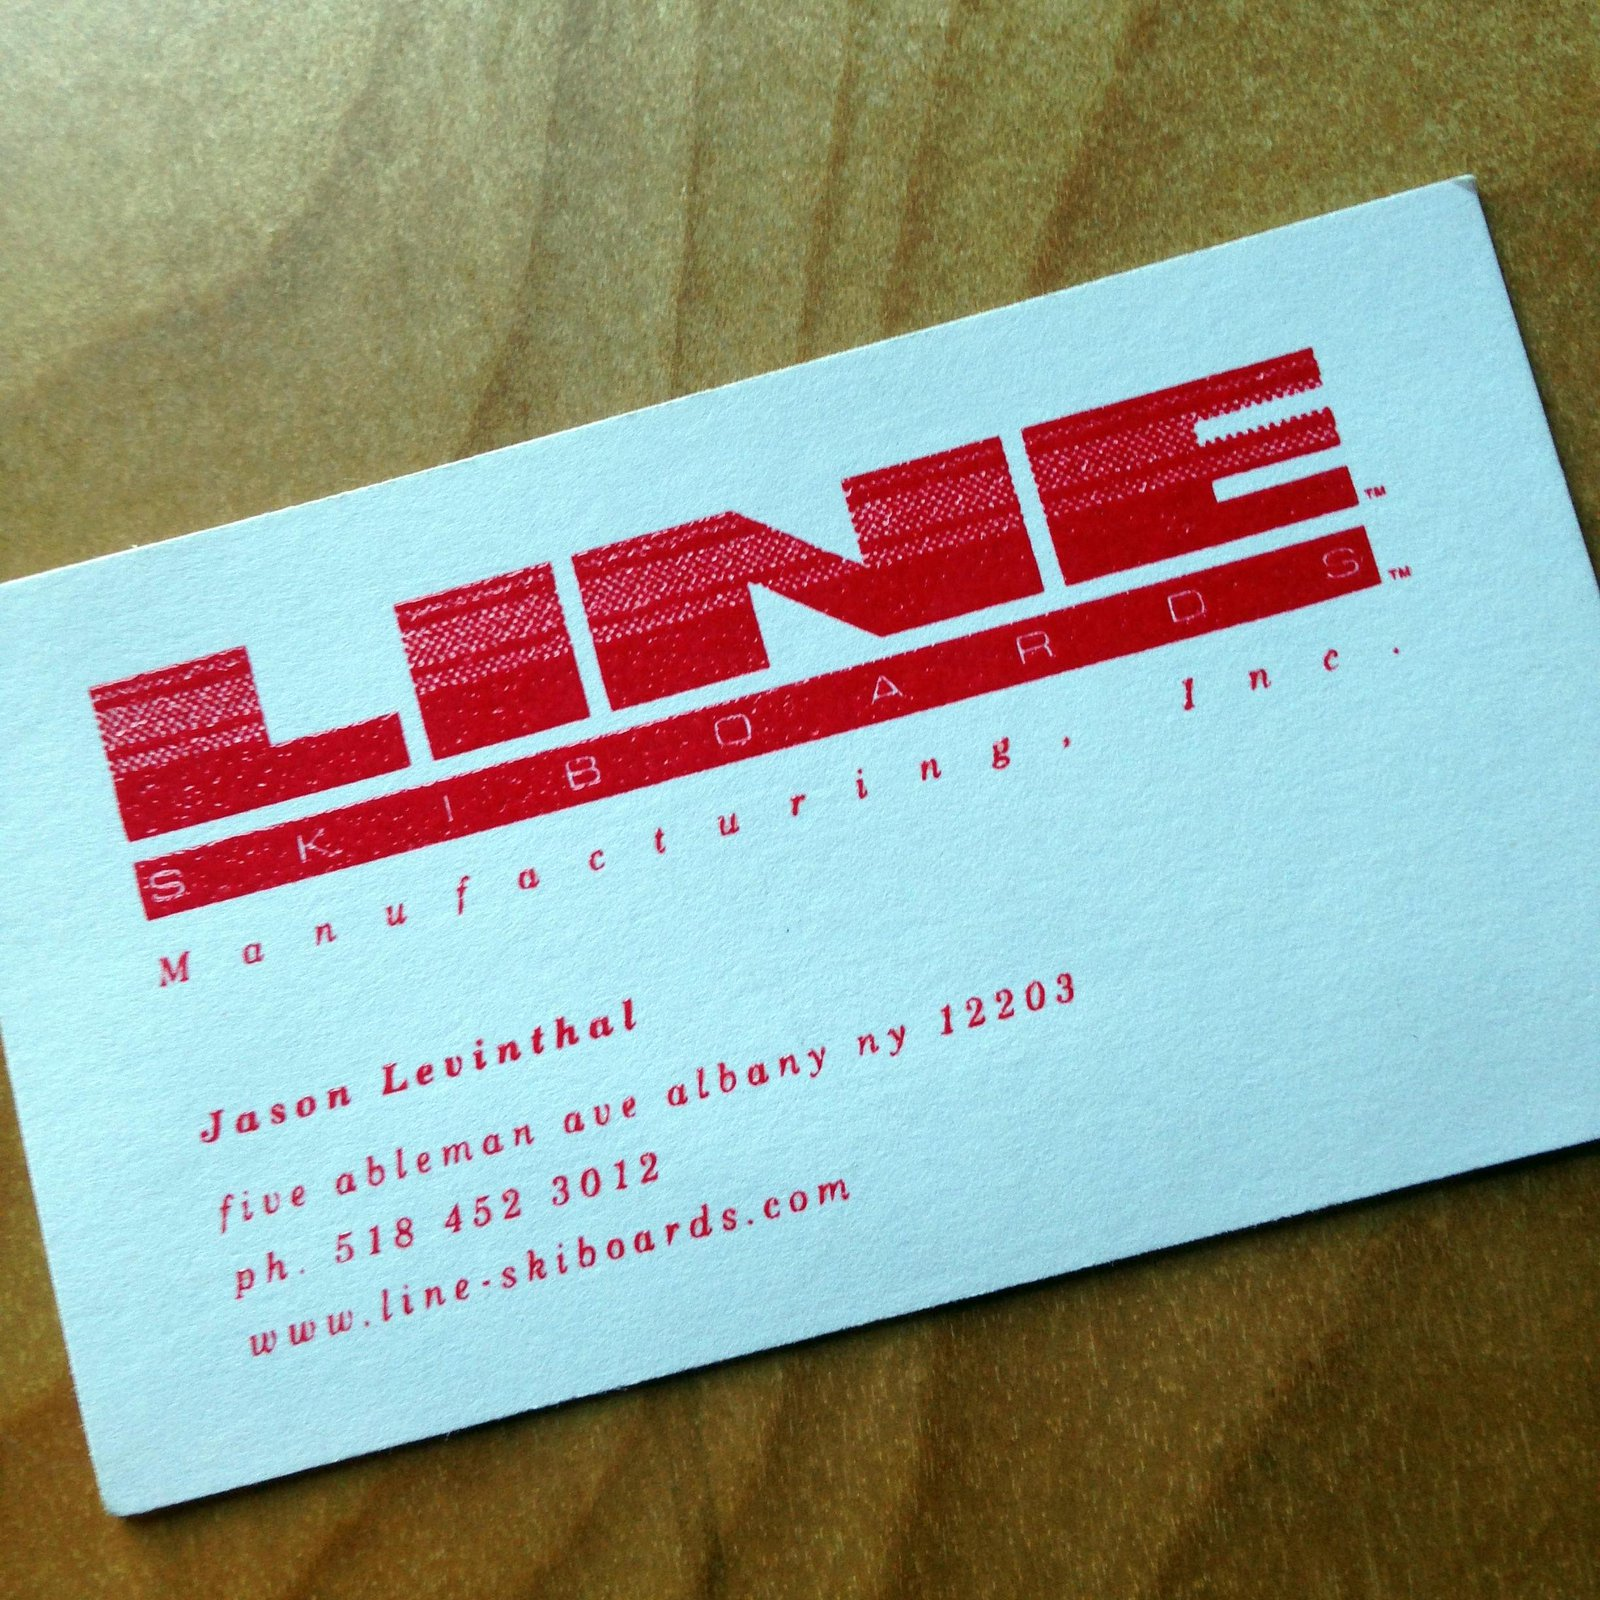 First business card